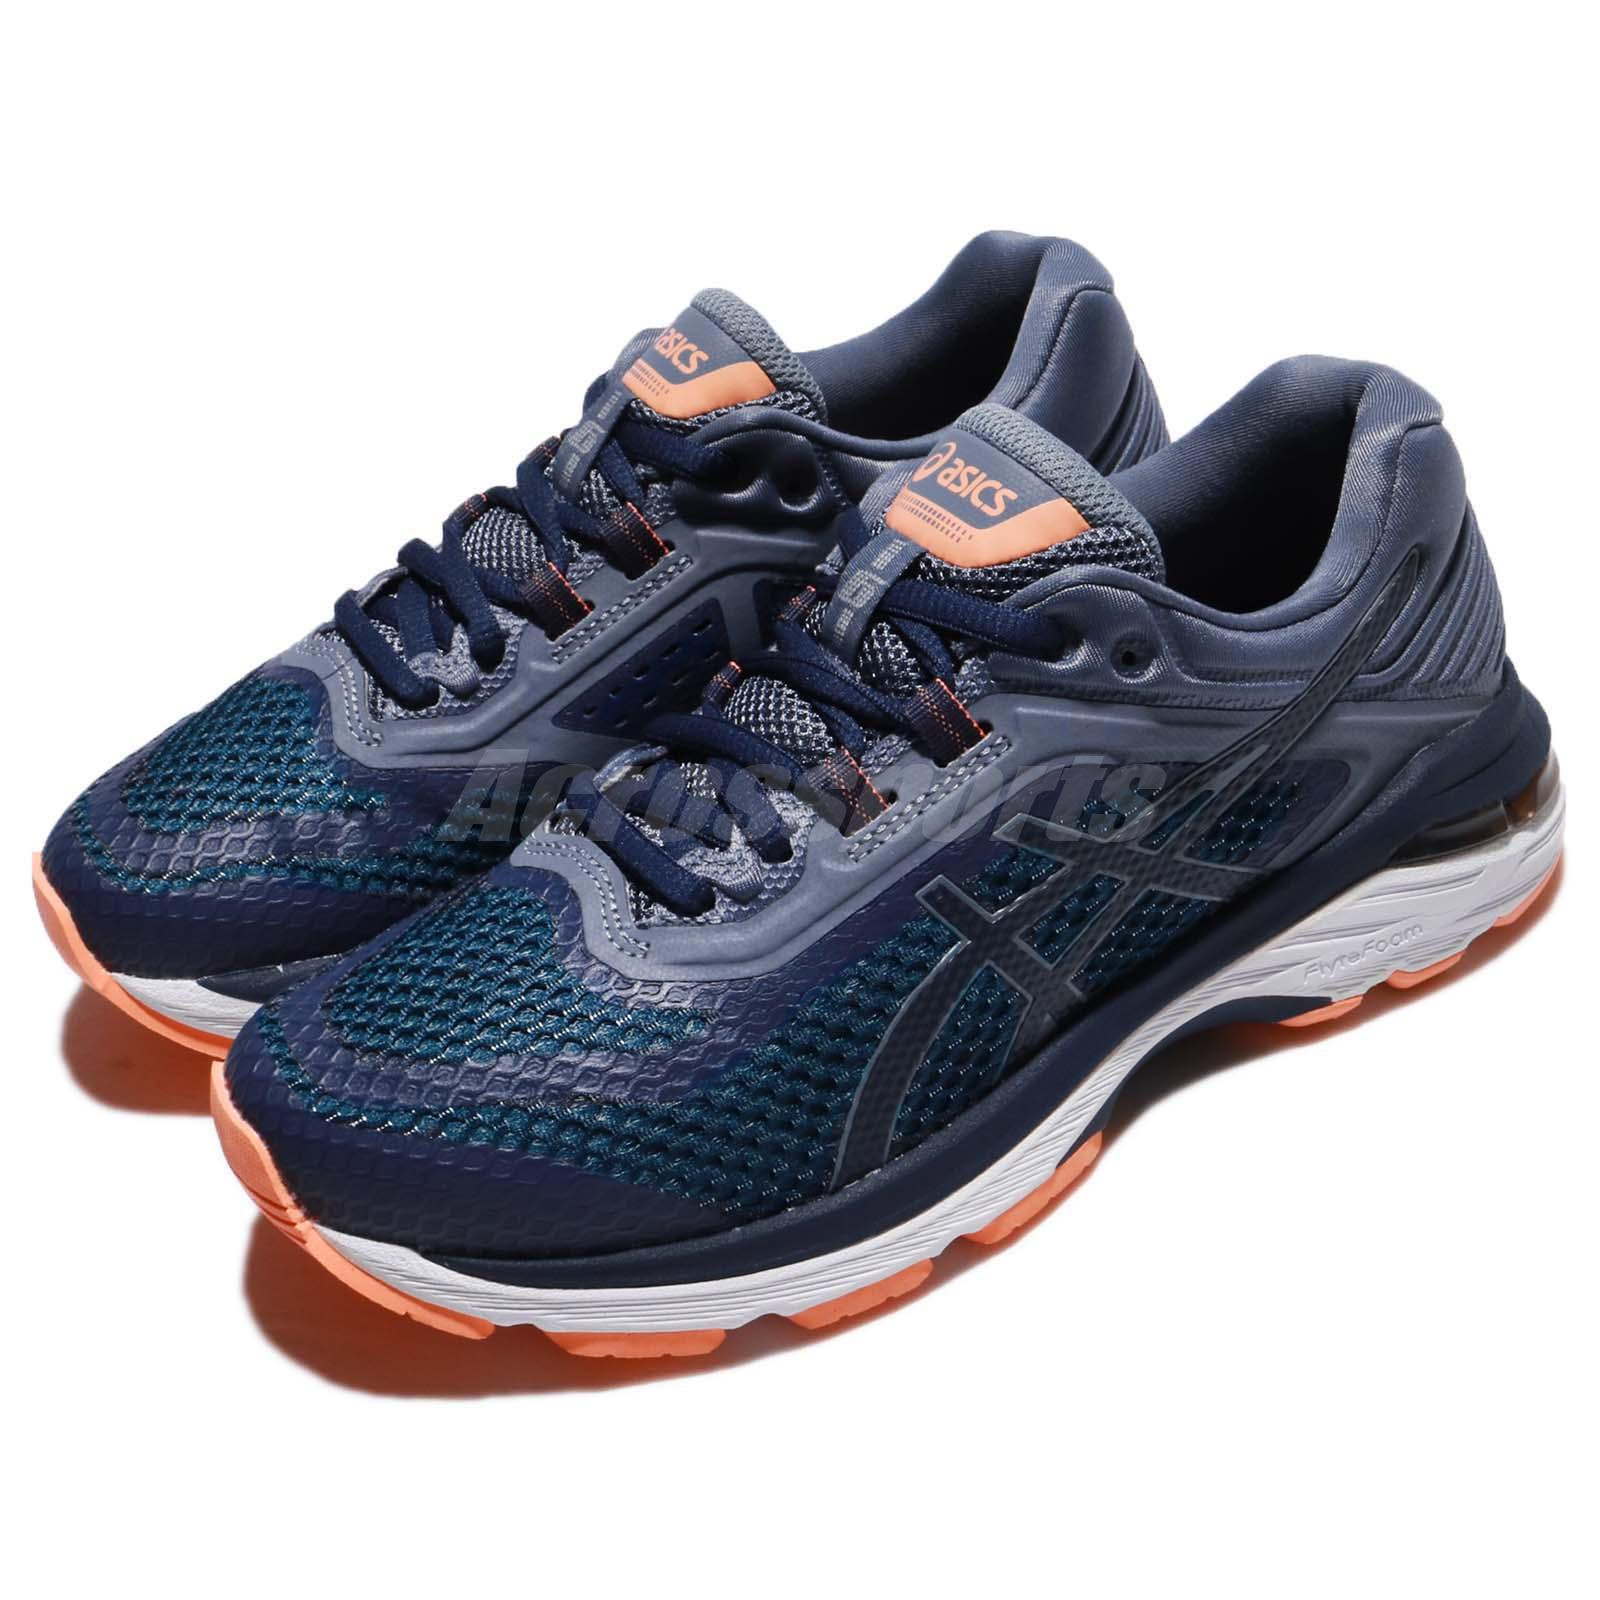 ce1b8d52630e Details about Asics GT-2000 6 D Wide Indigo Blue White Women Running Shoes  Sneakers T856N-4949